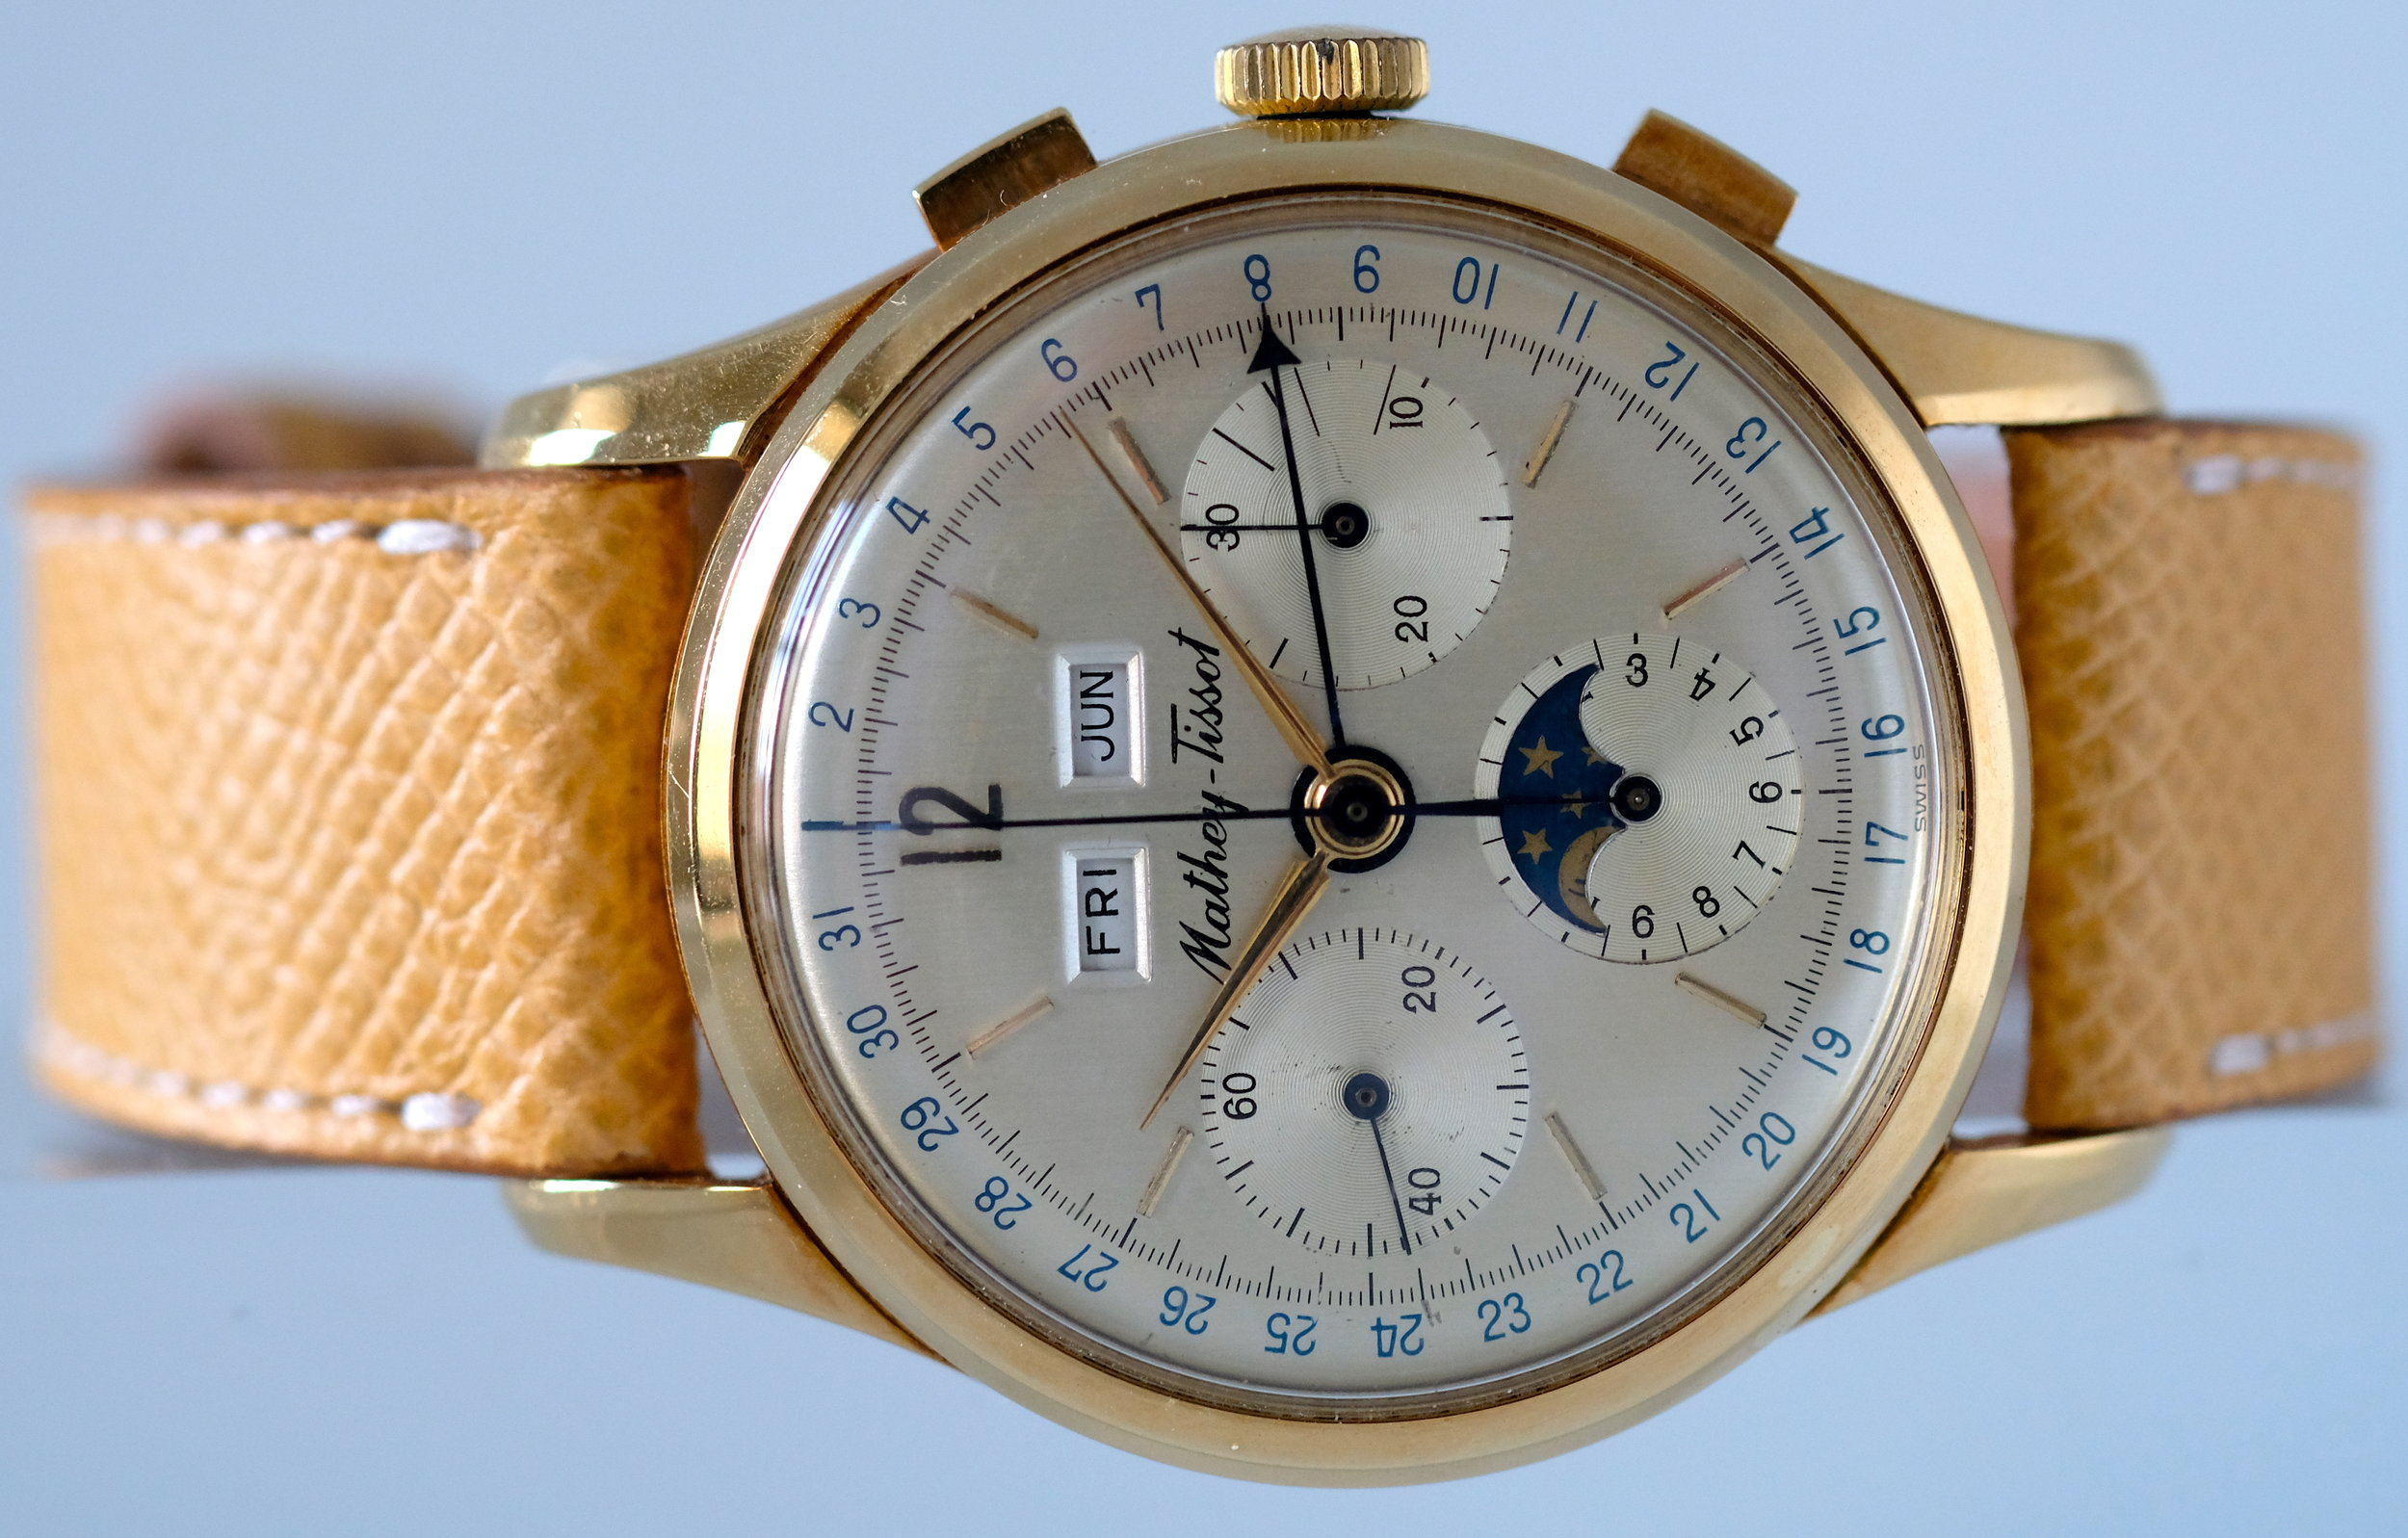 Mathey Tissot Triple Calendar Chronograph  Price: $8,950